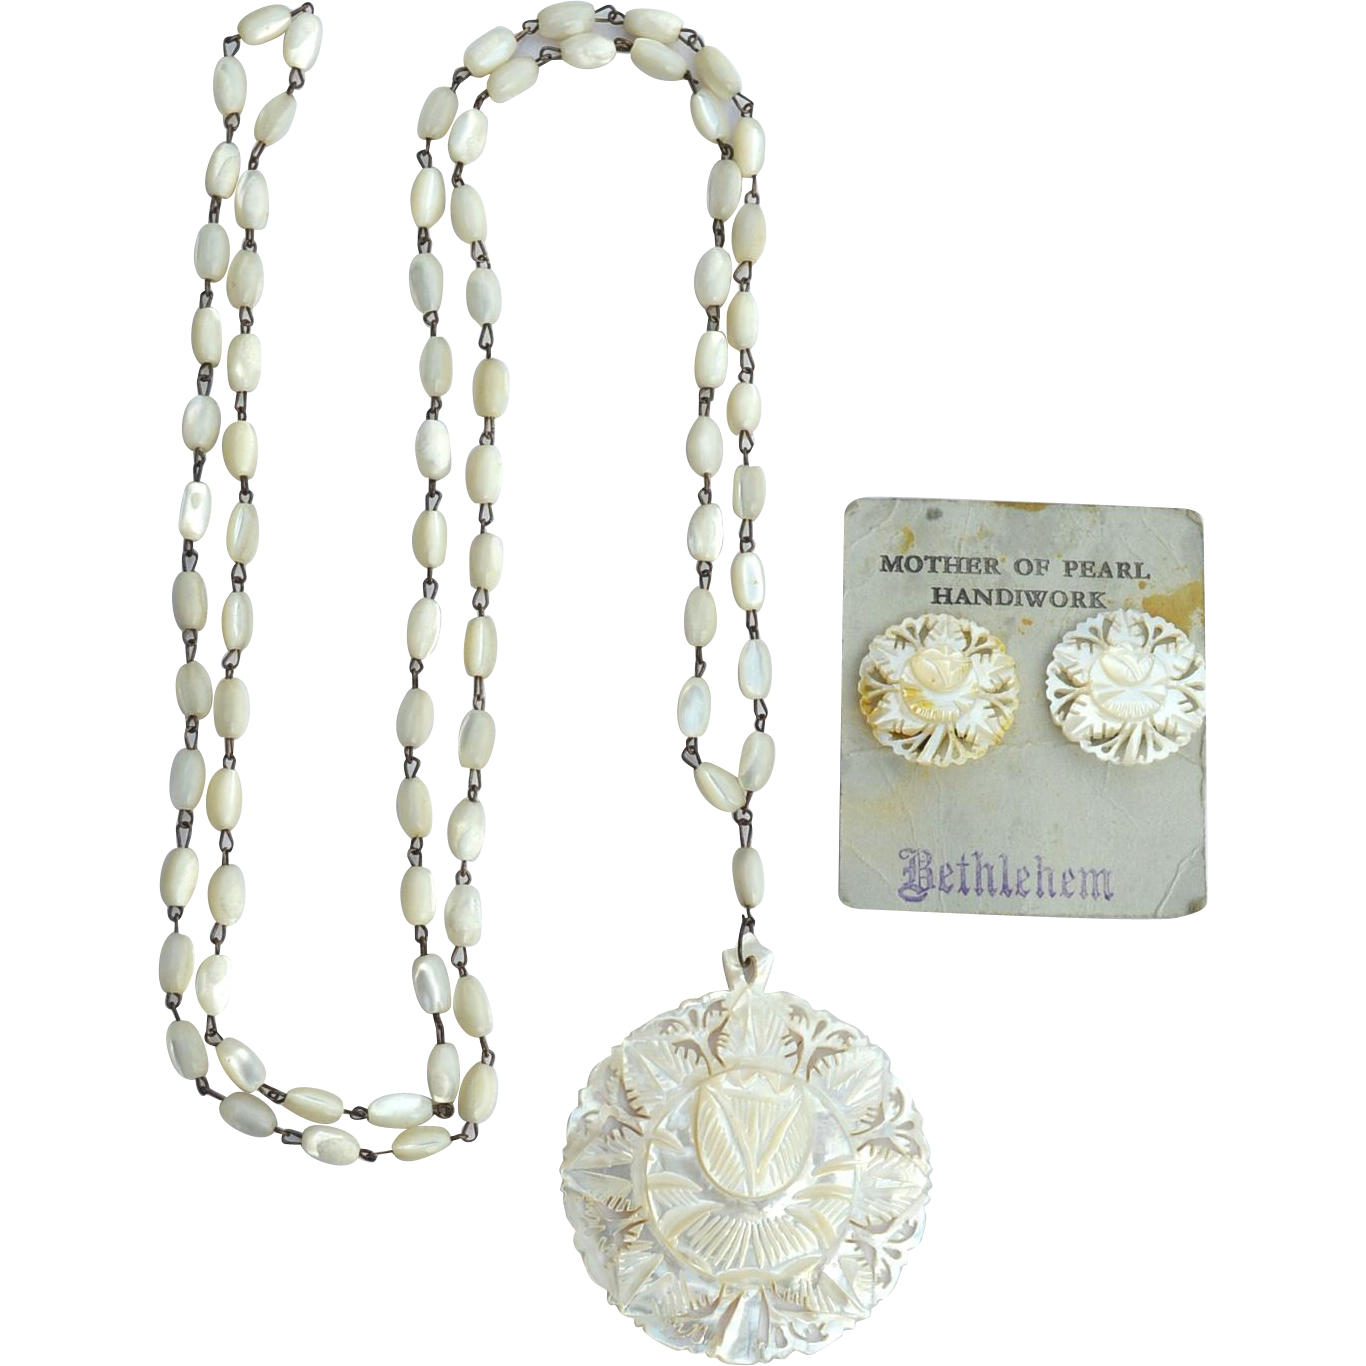 Vintage Hand Carved Mother Of Pearl Earrings and Necklace, Bethlehem, Original Card